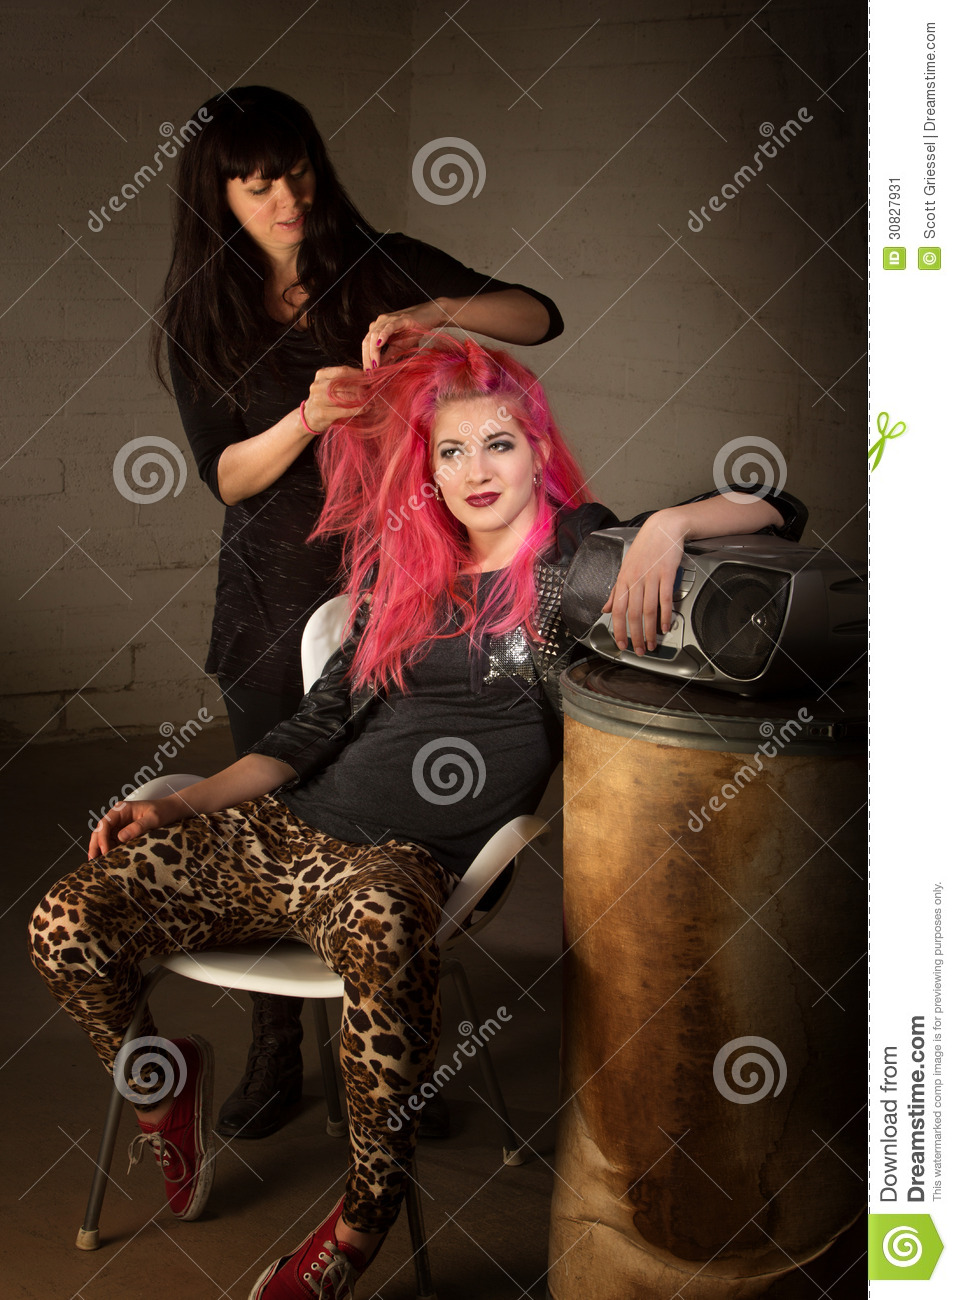 Punk Girl With Hair Stylist Stock Image  Image 30827931